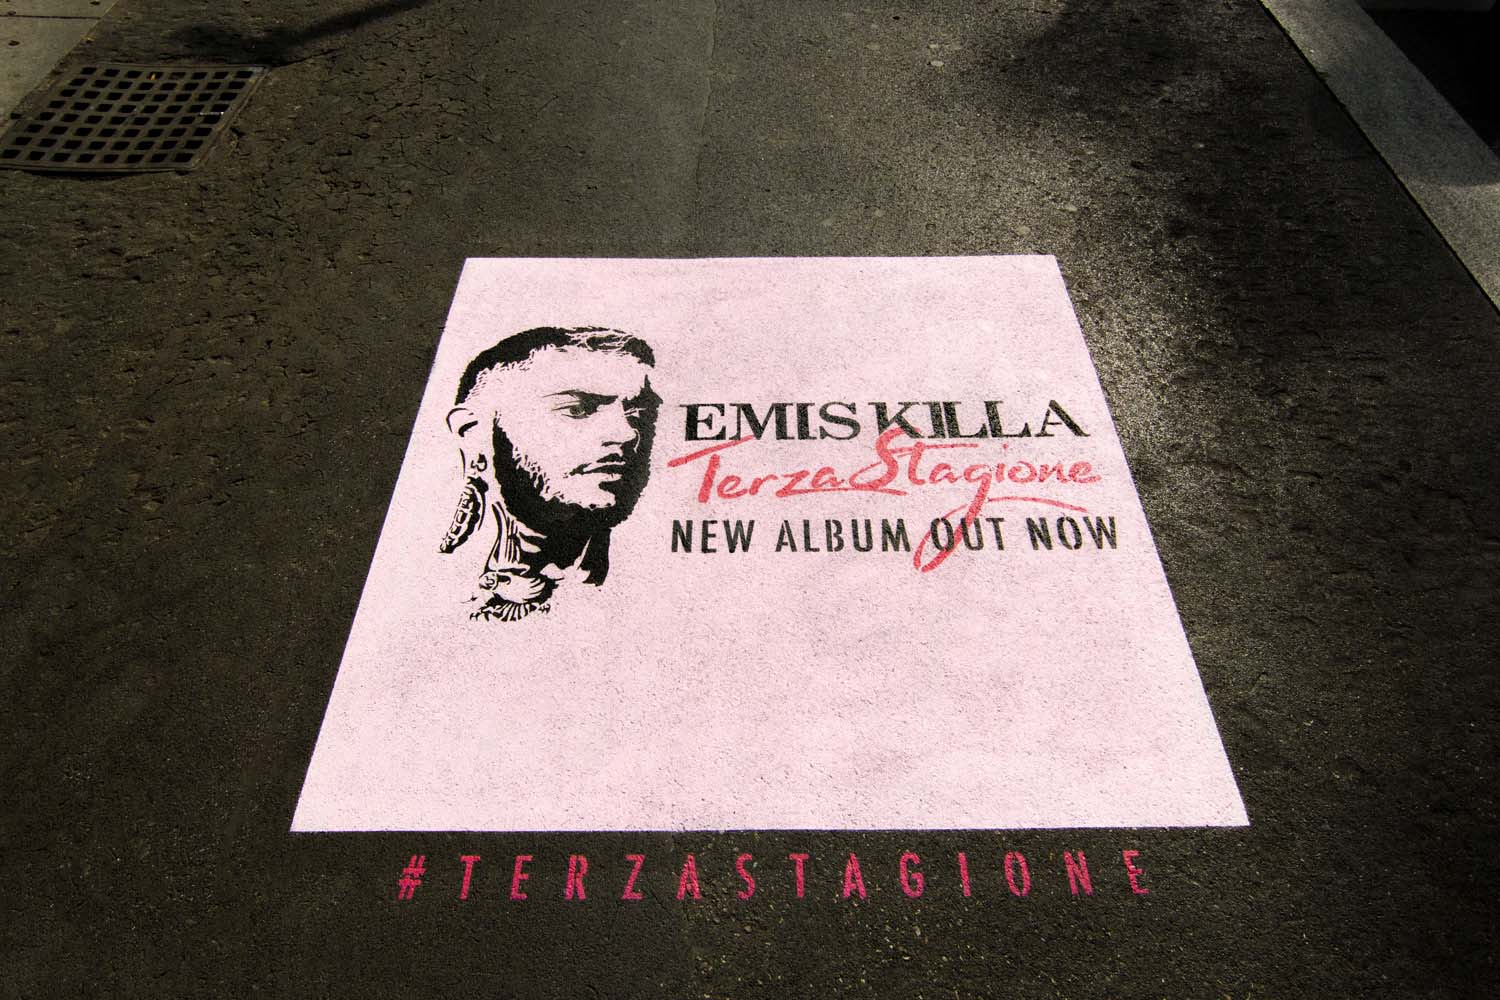 graffiti marketing carosello records emis killa